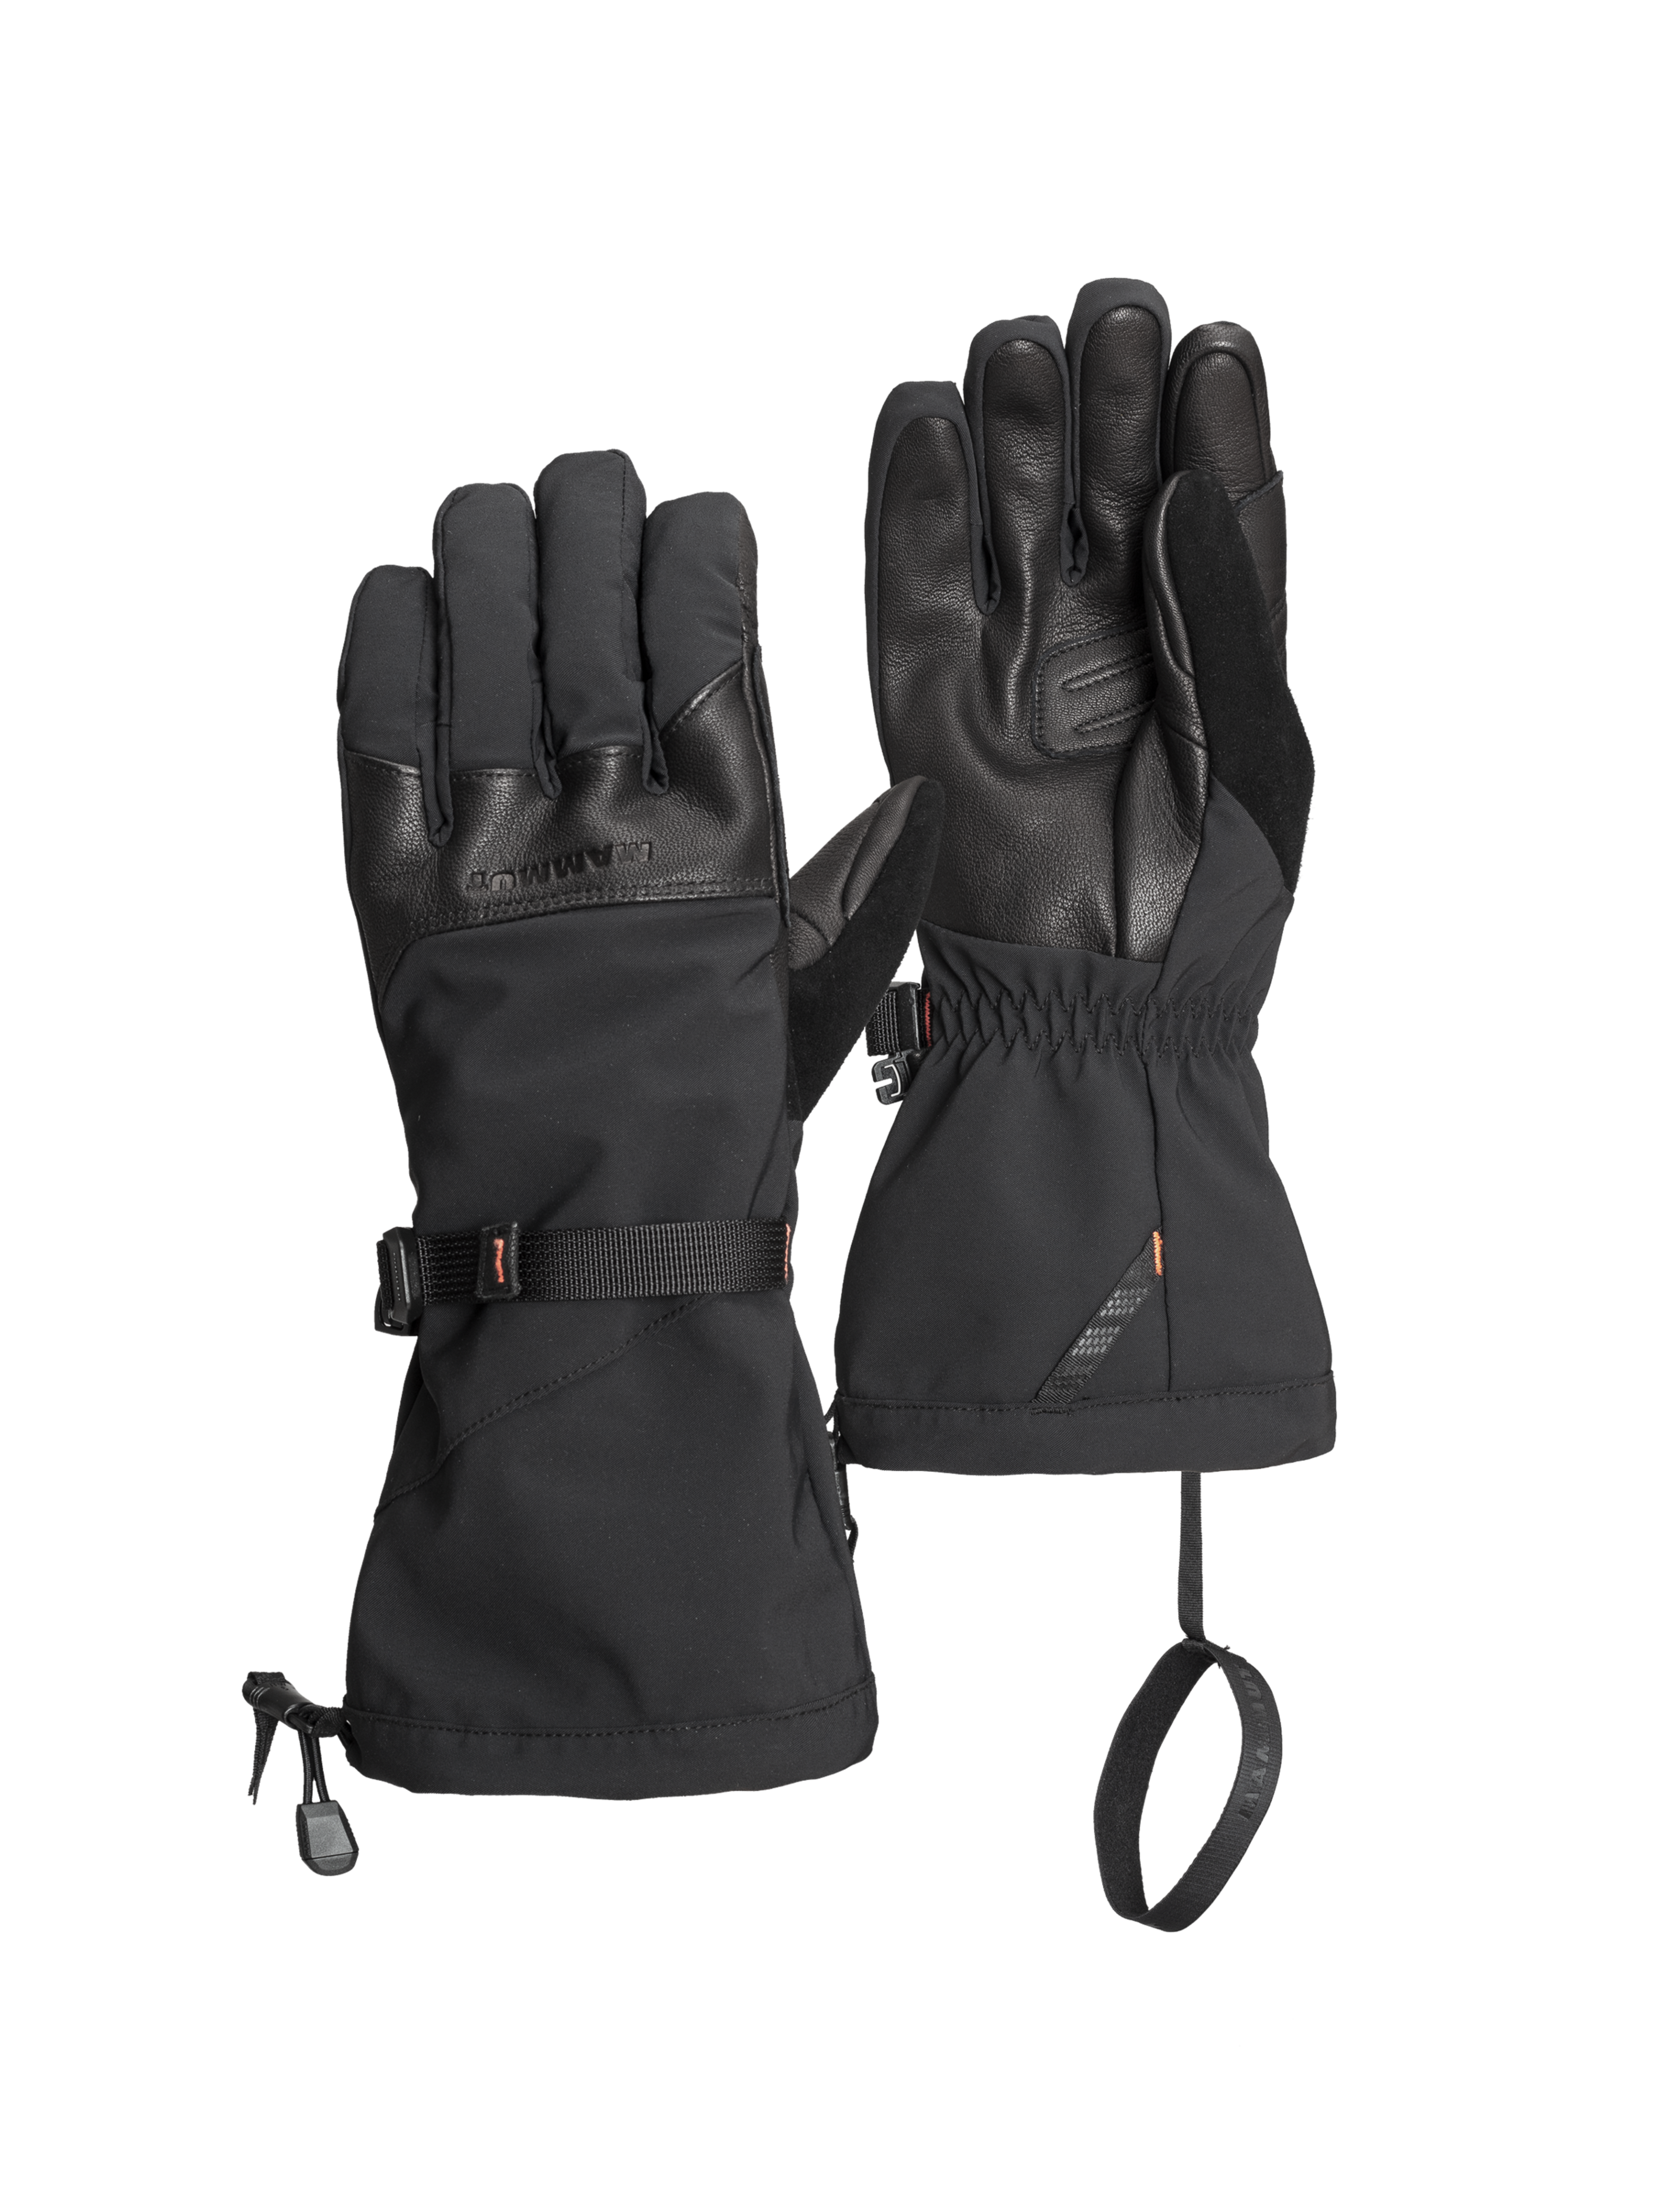 Masao 3 in 1 Glove product image